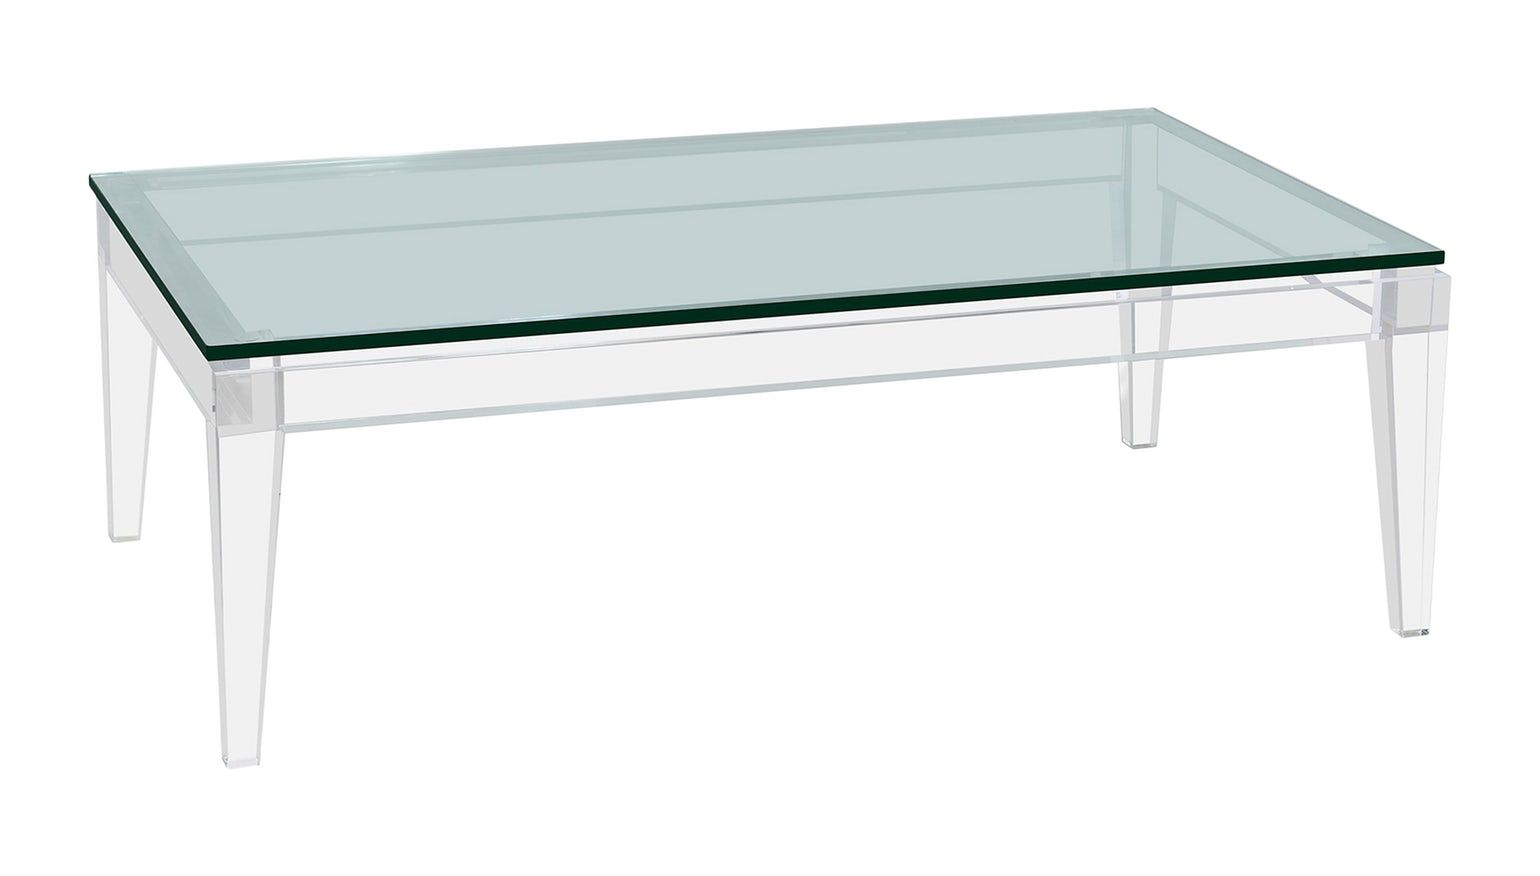 Arabella Cocktail Table Contemporary Transitional Midcentury Modern Art Deco Glass Acrylic Coffee Cocktail Table B Table Cocktail Tables Lucite Furniture [ 876 x 1540 Pixel ]